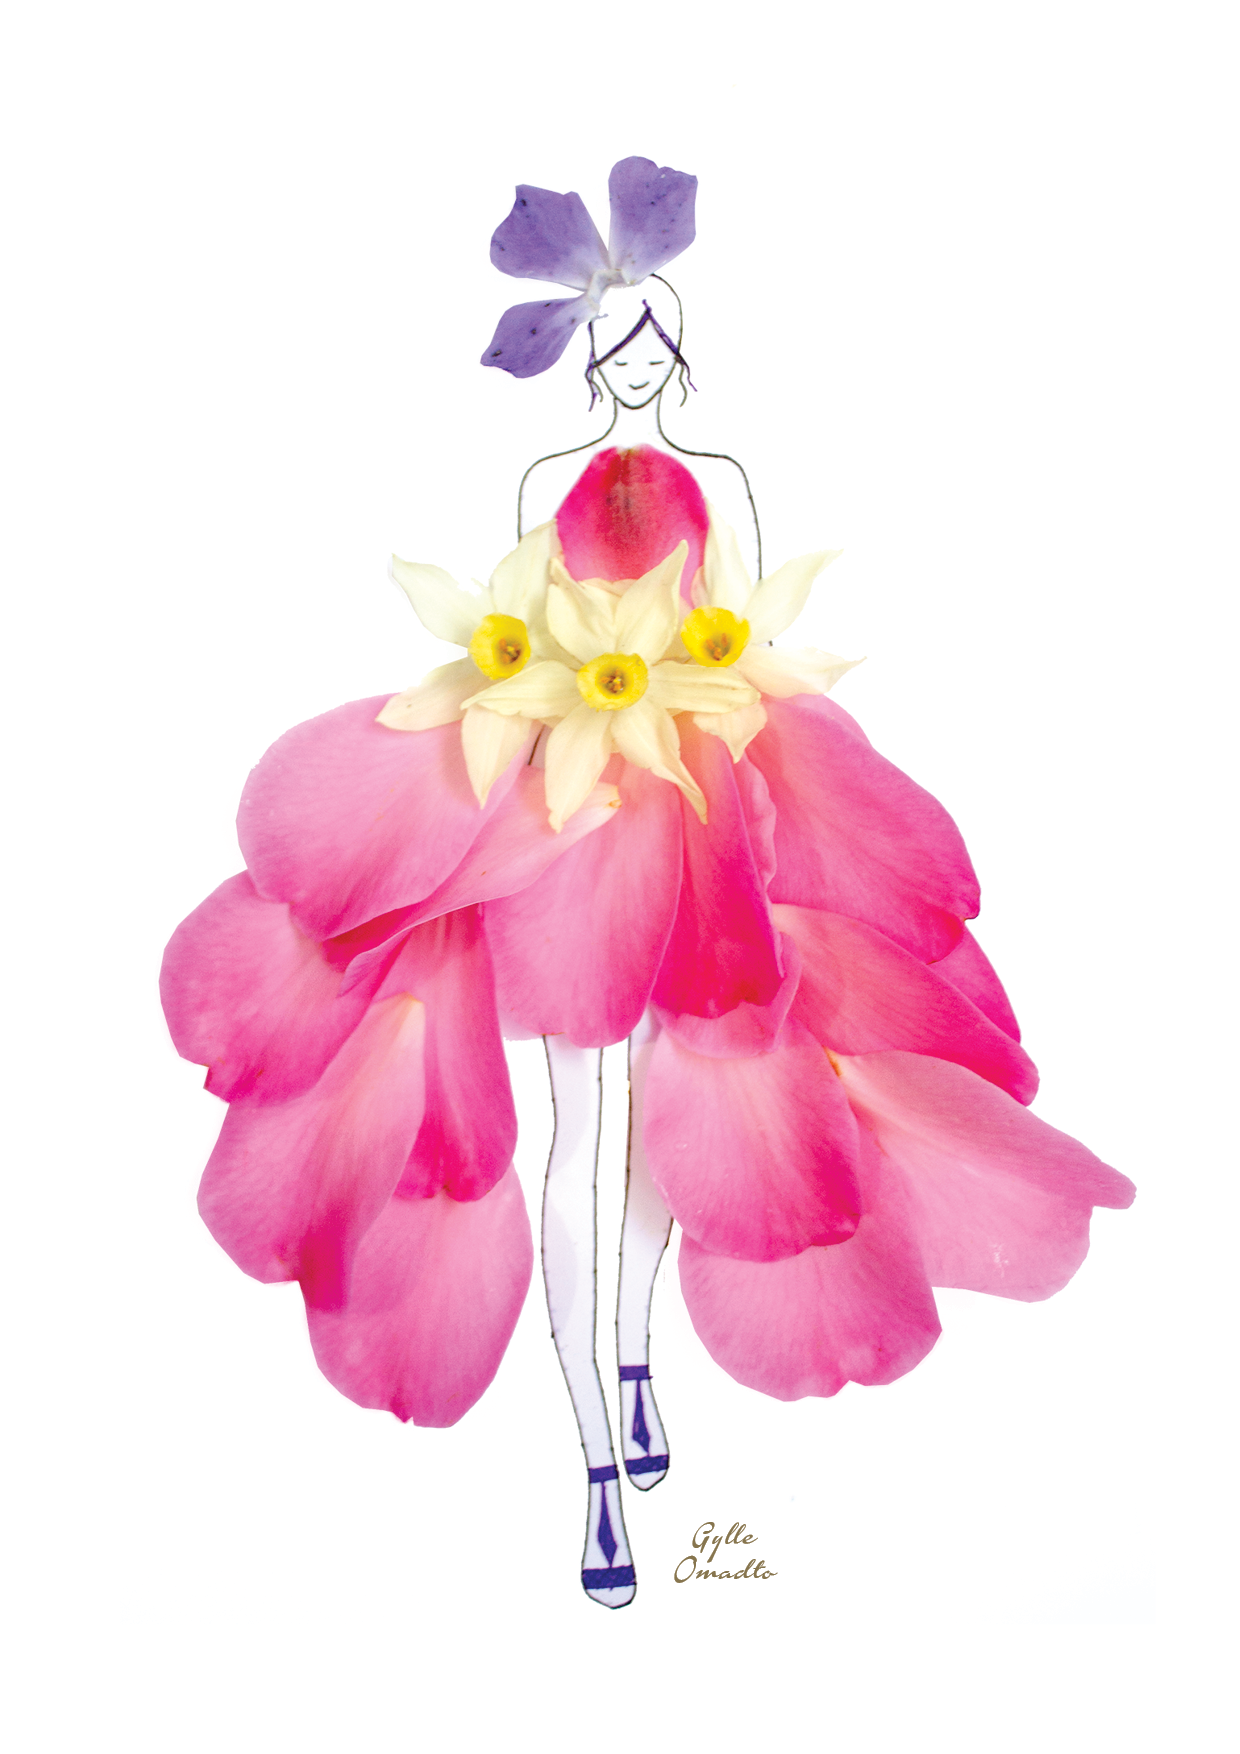 fashion illustrations with real flower petals as clothing